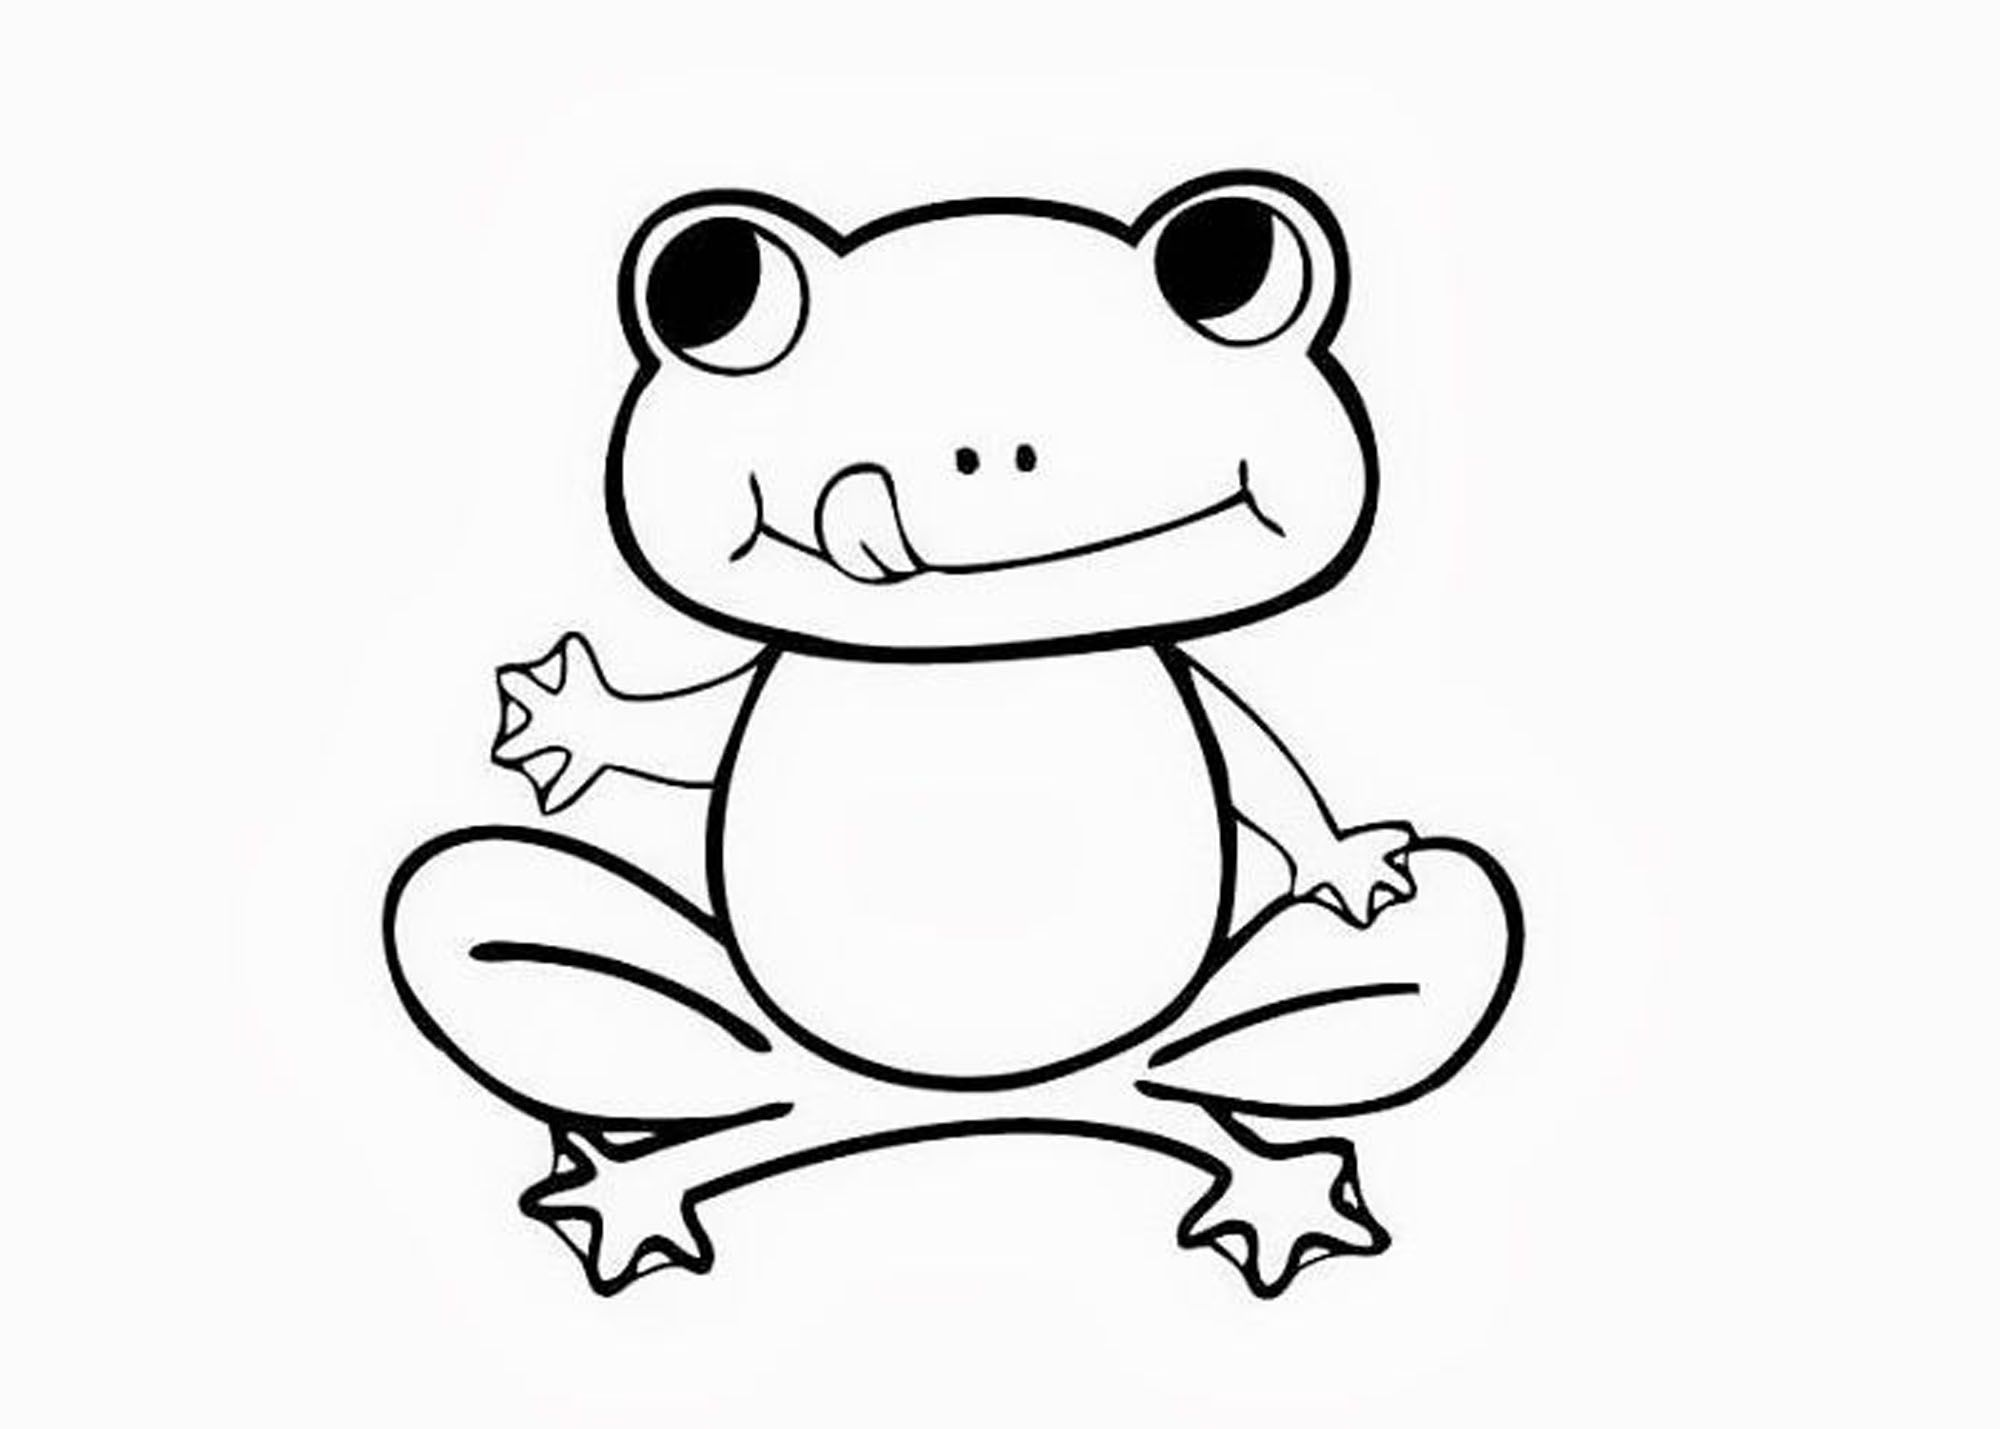 Cute Toad Coloring Pages To Print